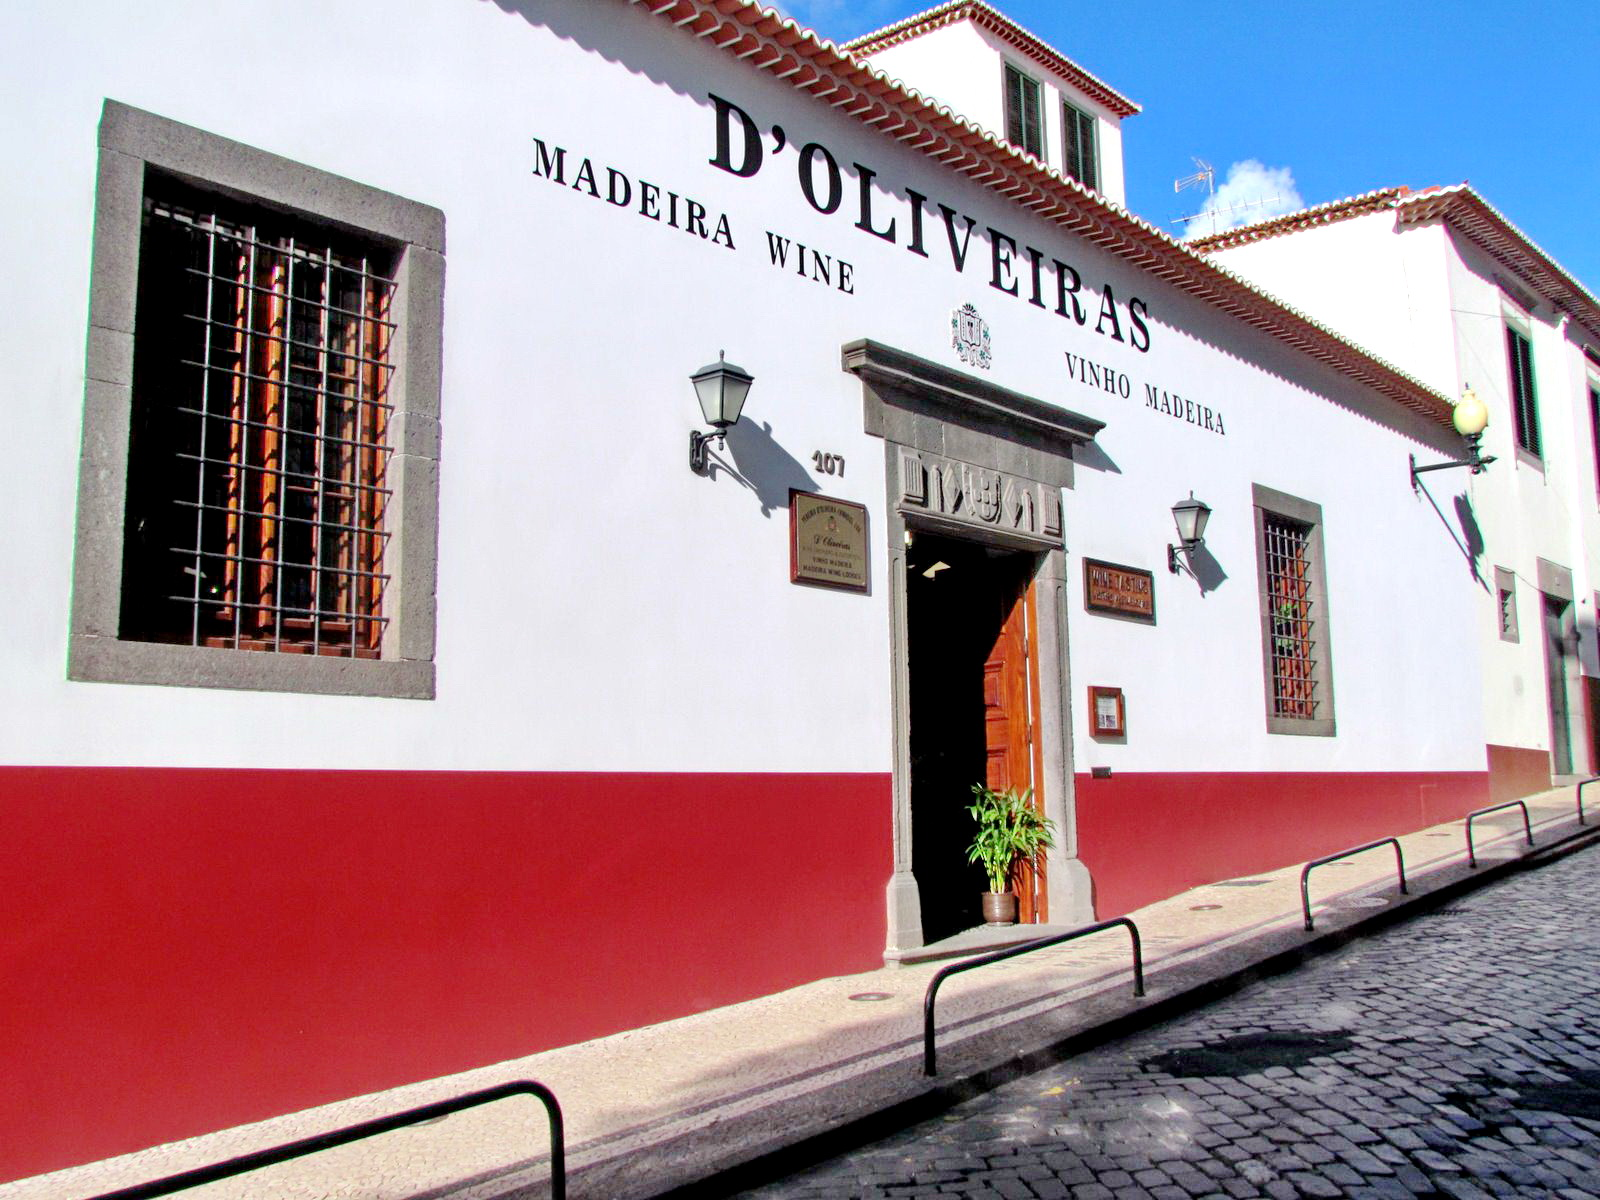 Madeira wine producer and seller